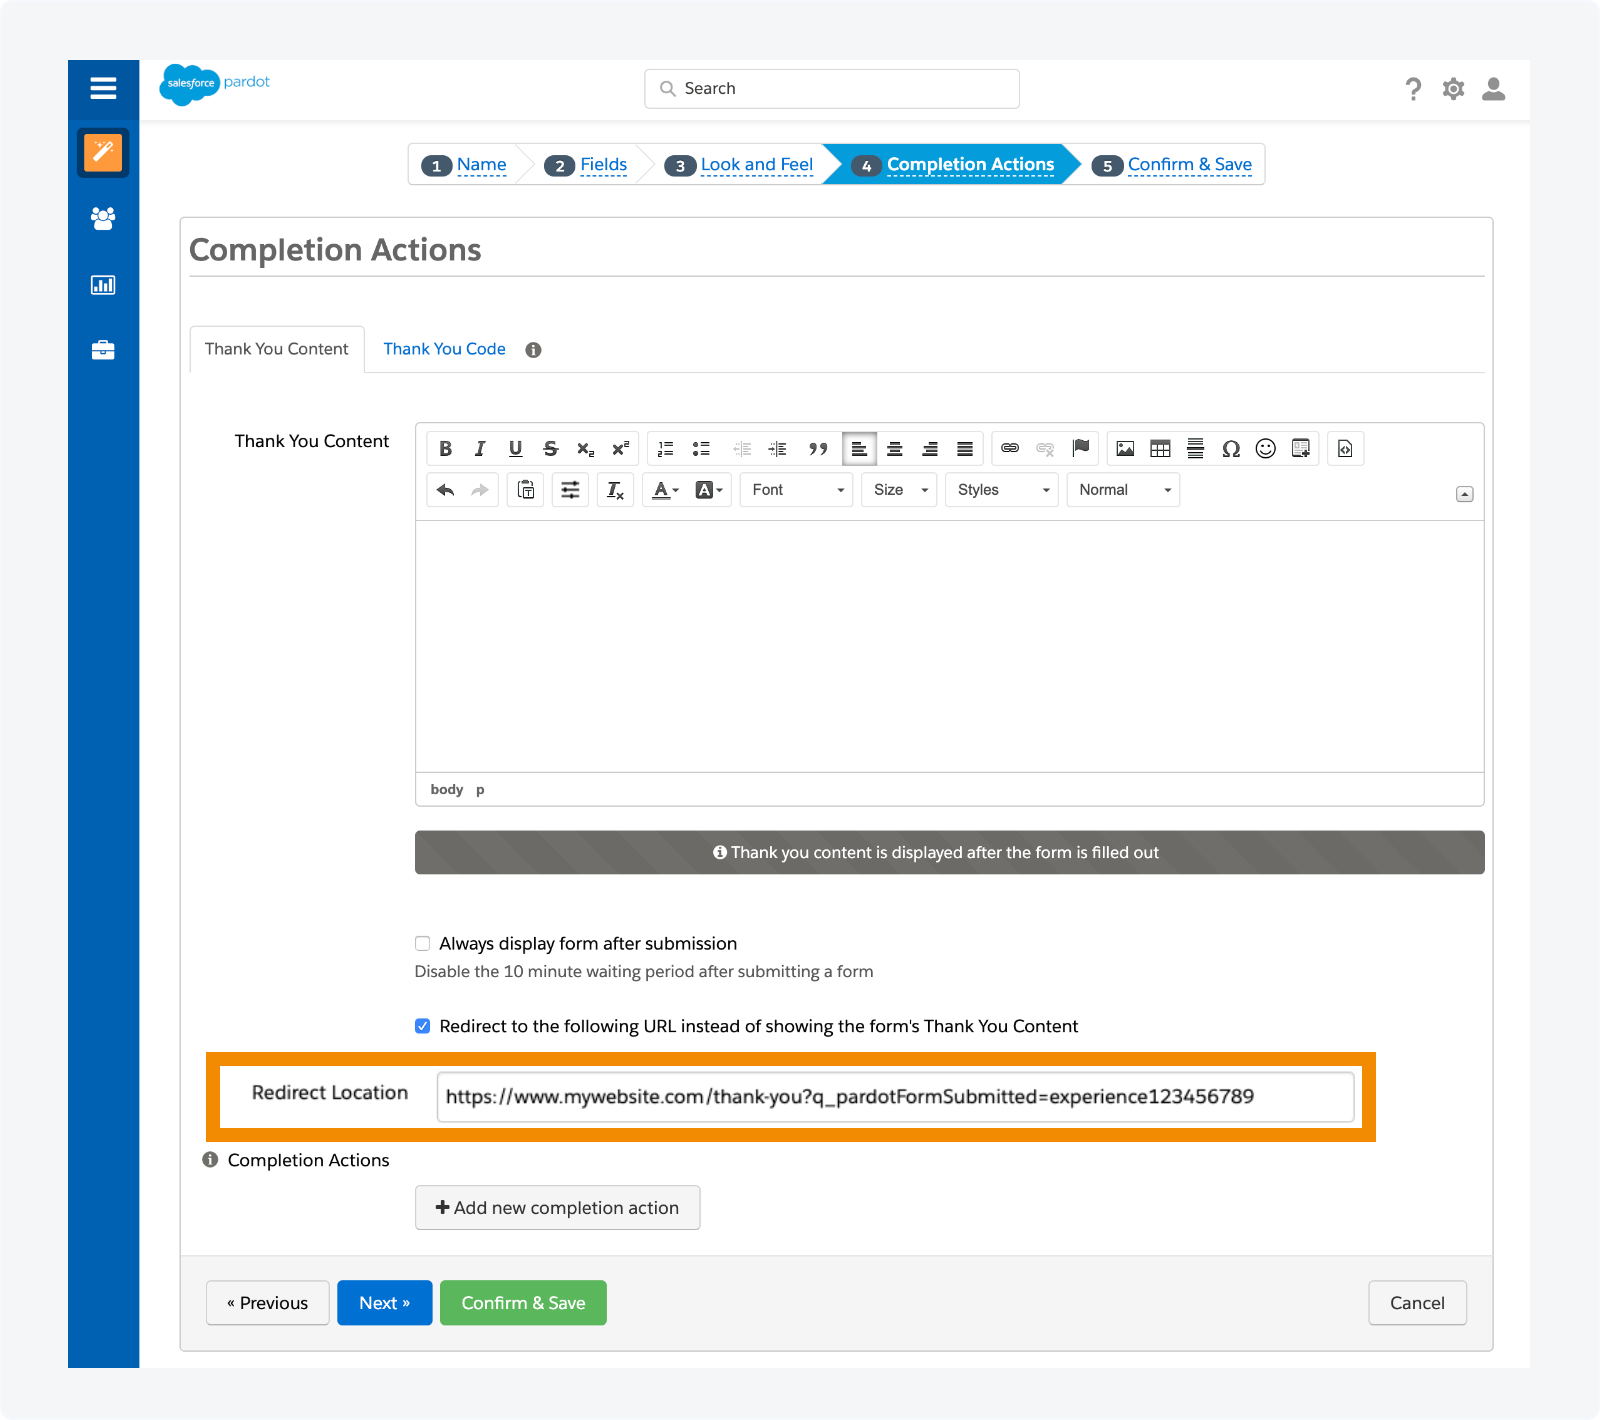 Adding the Qualified query parameter to you form URL redirect